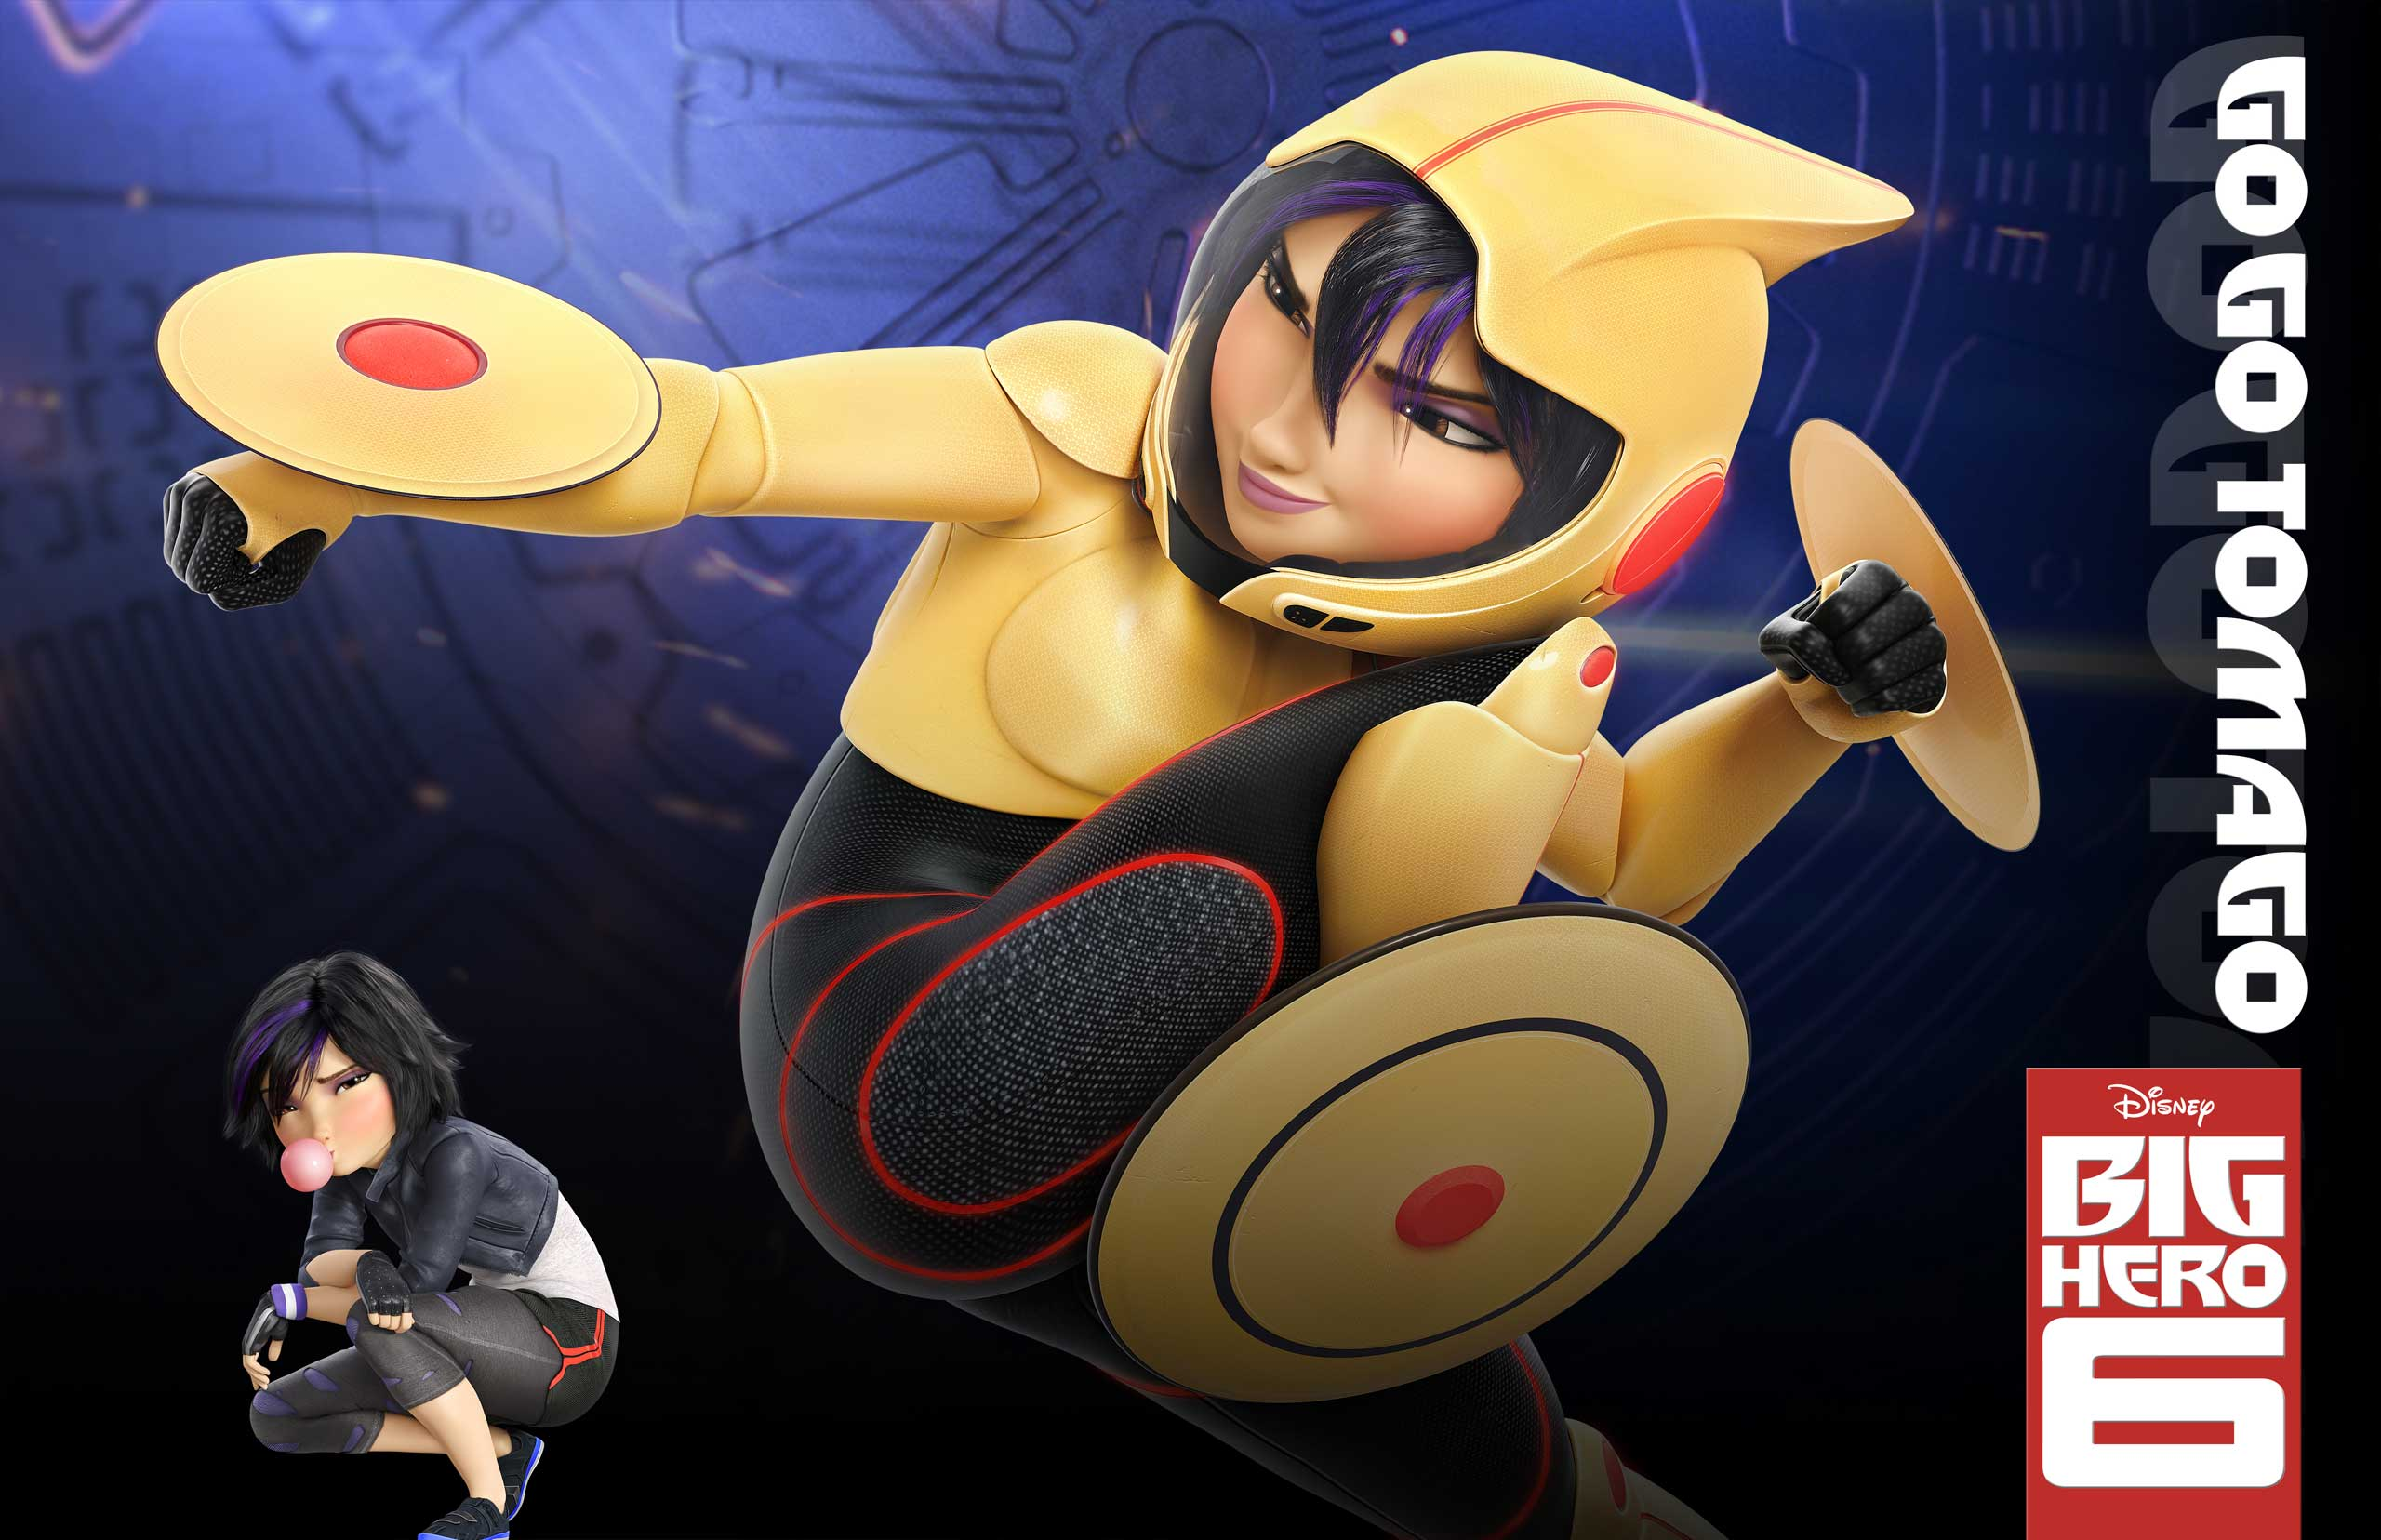 GoGo Tomago, voiced by Jamie Chung, is a a spunky and athletic girl with a need for speed. She zooms around on electro magnetic discs that double as weapons that she can project.